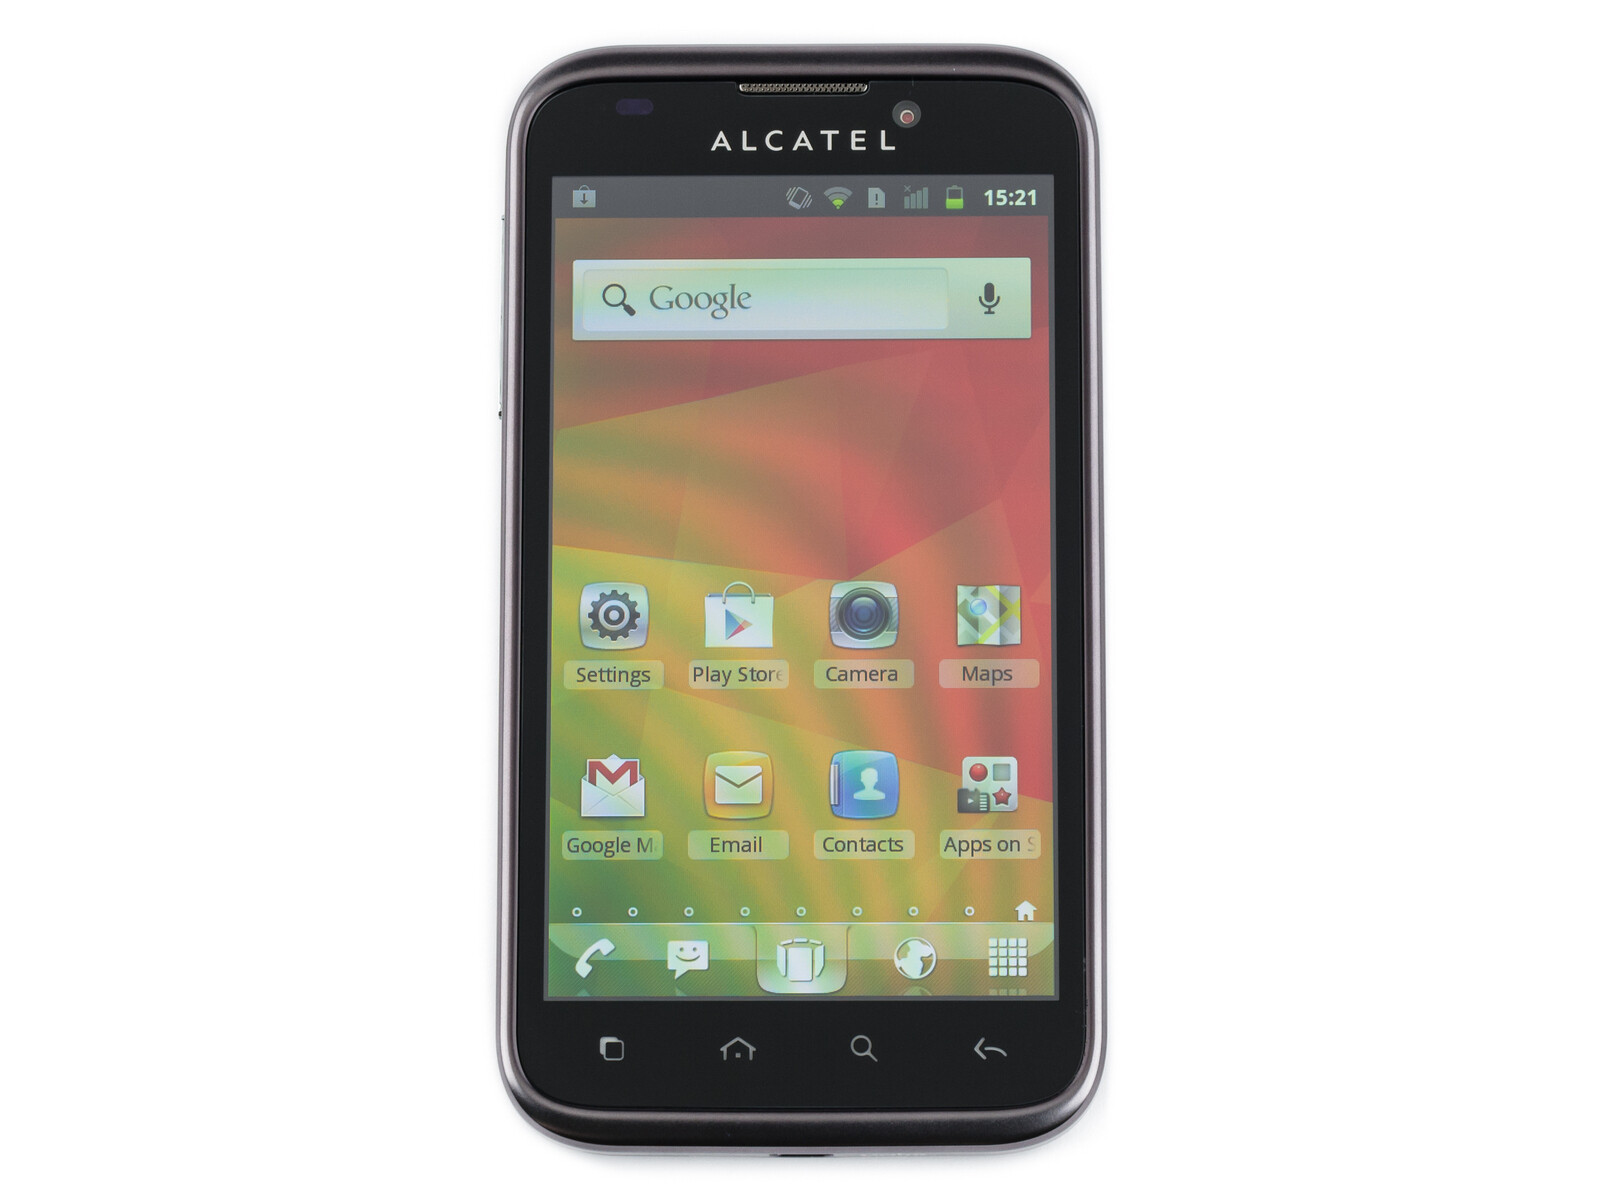 alcatel ot 995 specs. Black Bedroom Furniture Sets. Home Design Ideas